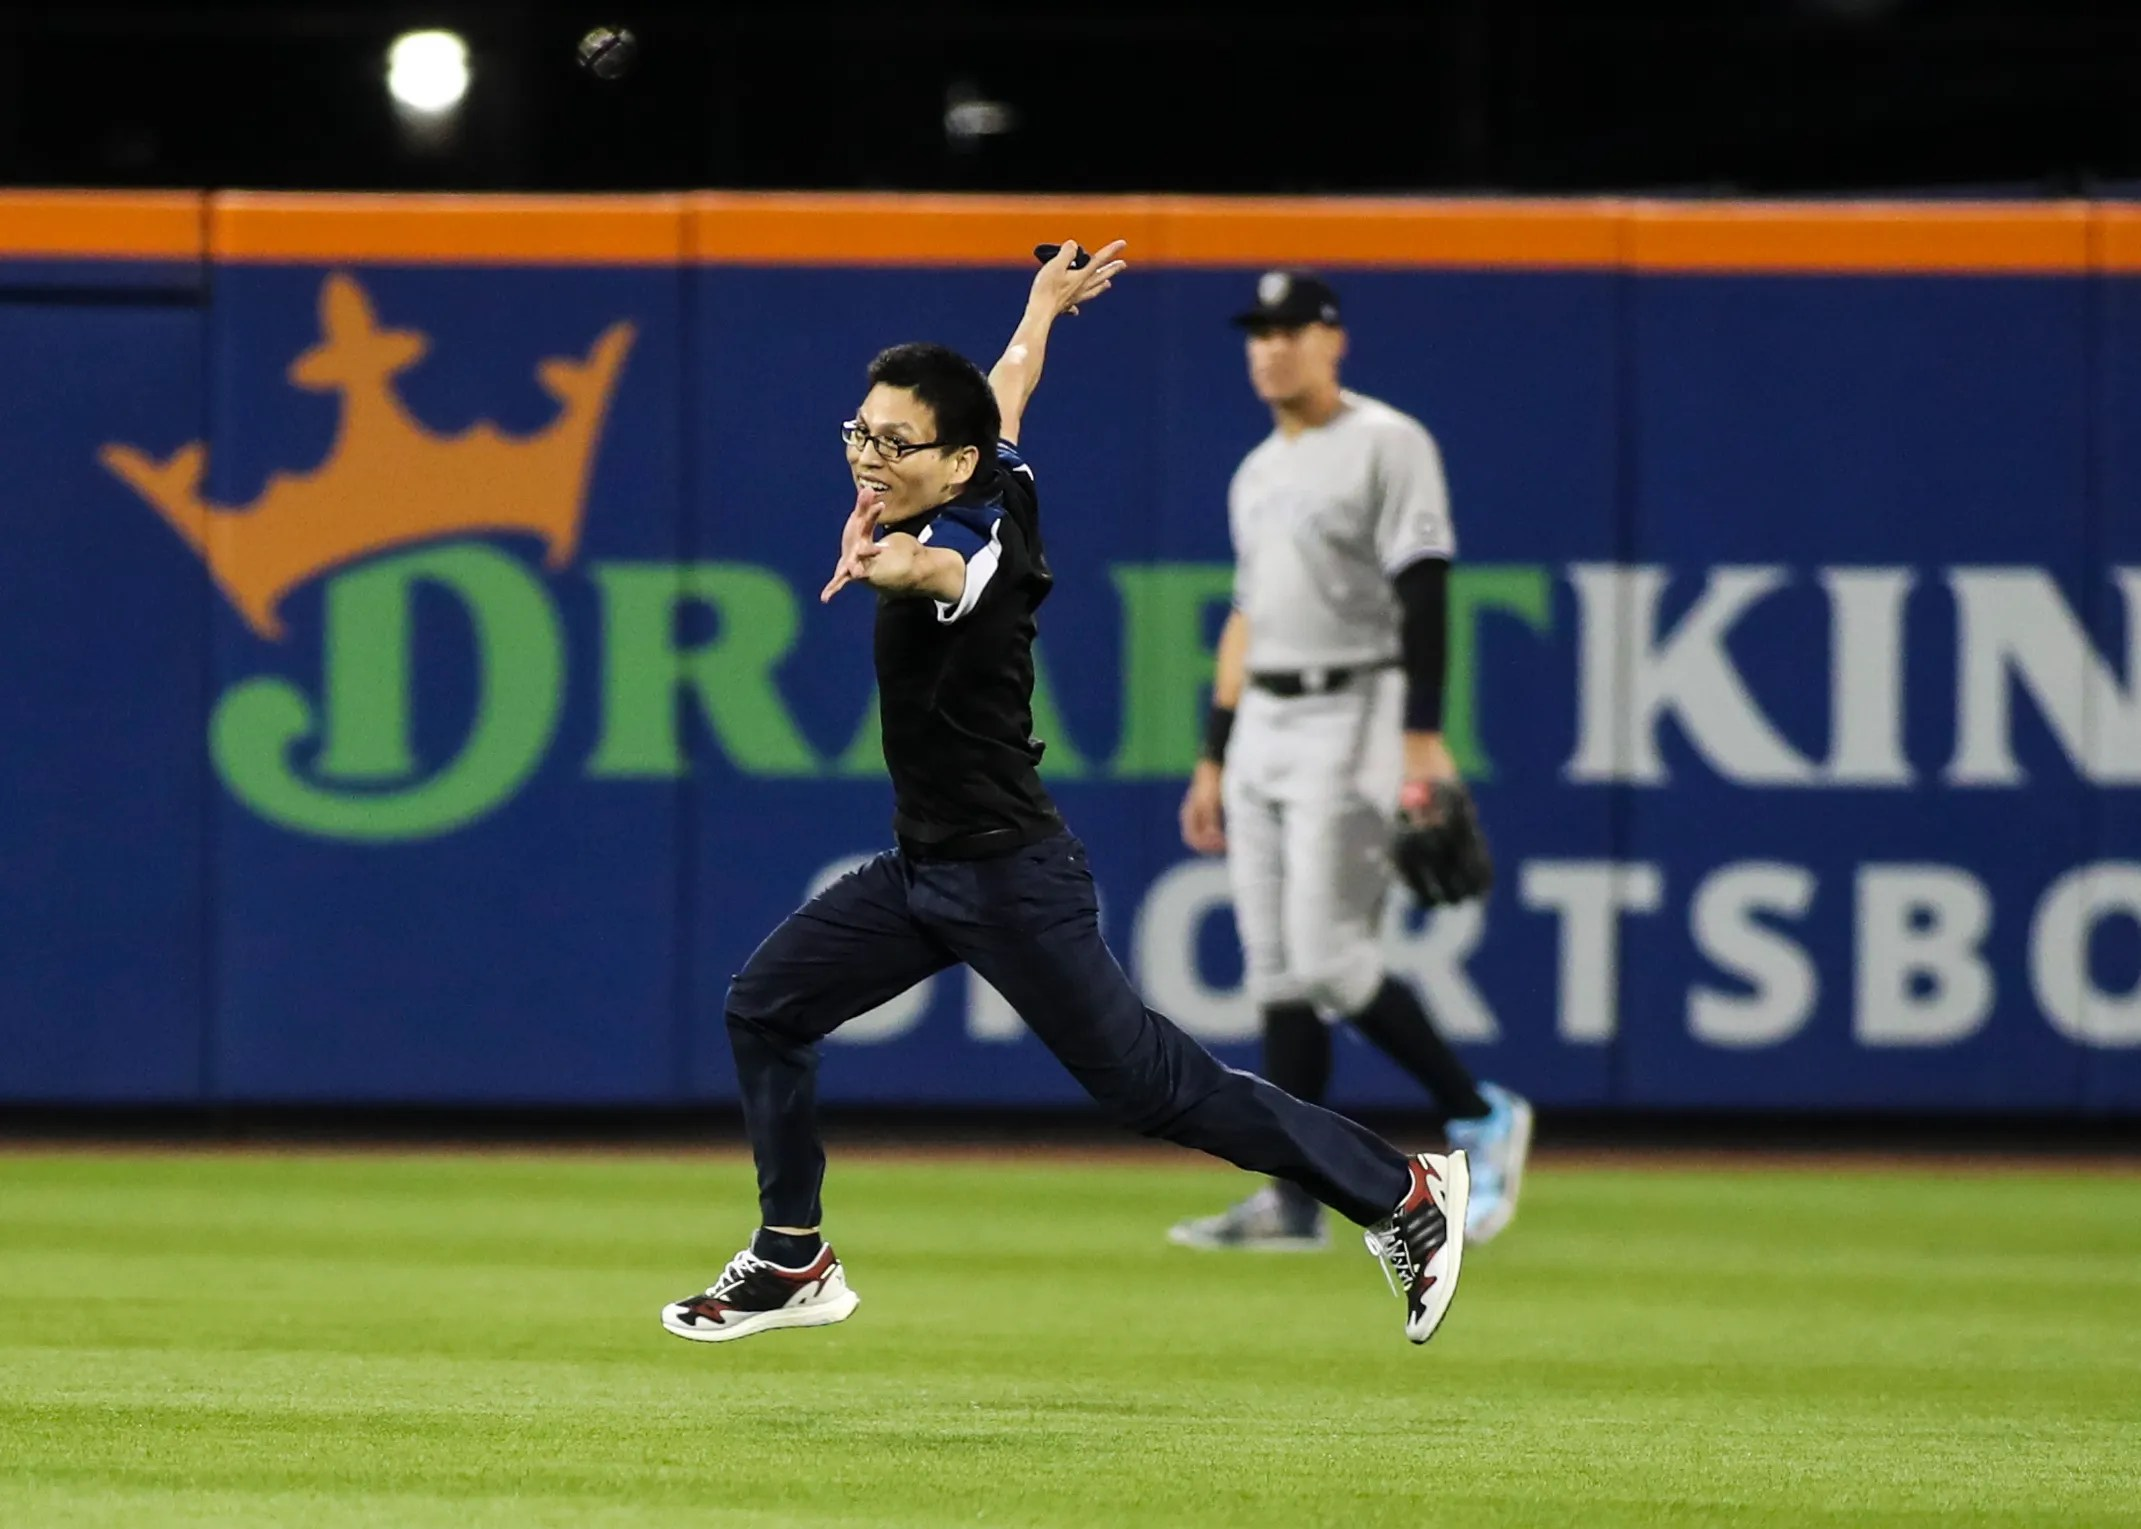 A fan runs onto the field in the sixth inning of the game between the New York Yankees and New York Mets at Citi Field.